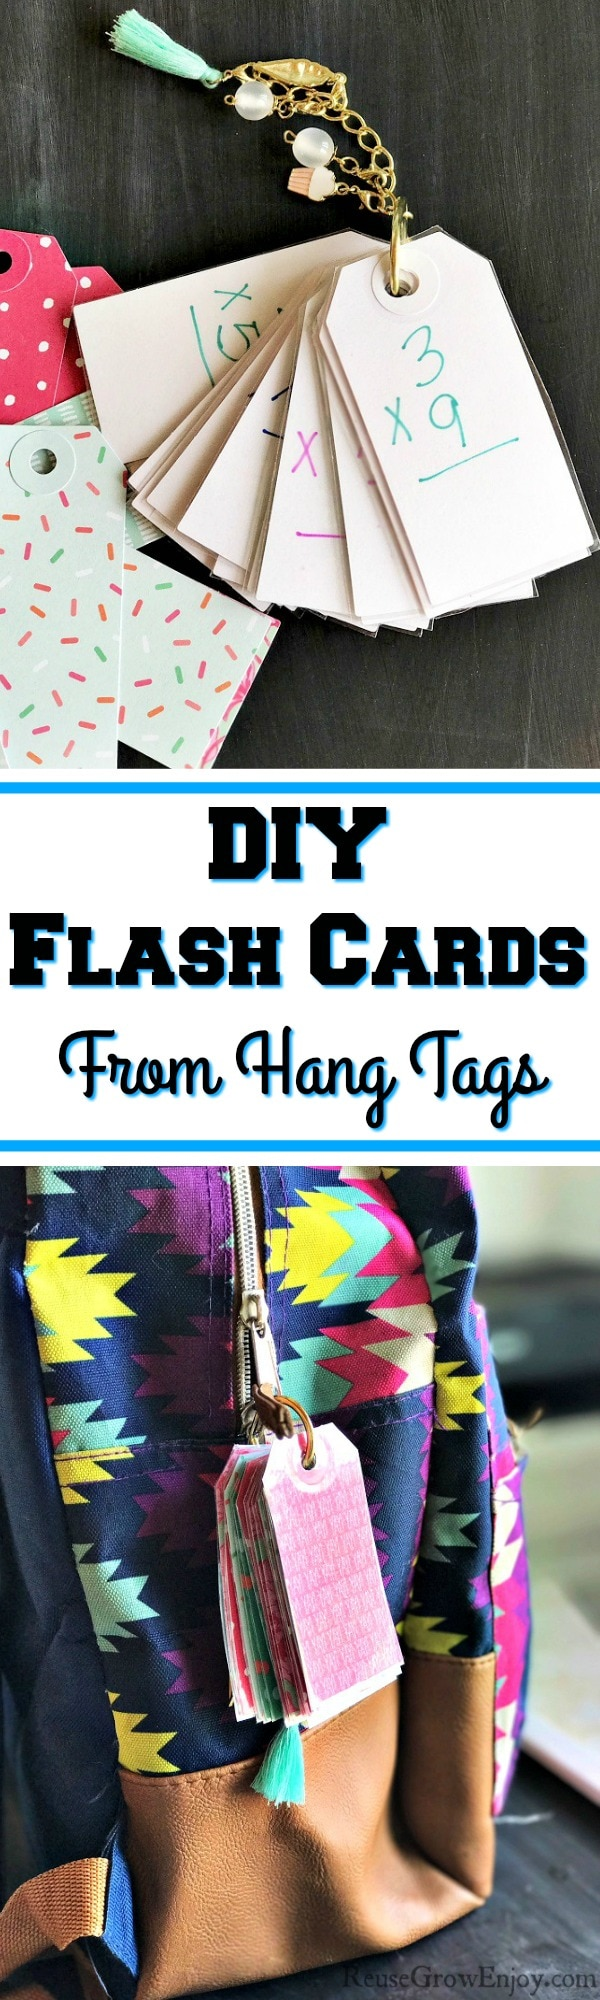 If the kids could use some flash cards, check this out. You can turn hang tags into DIY flash cards! Can be for math, spelling, reading or anything.